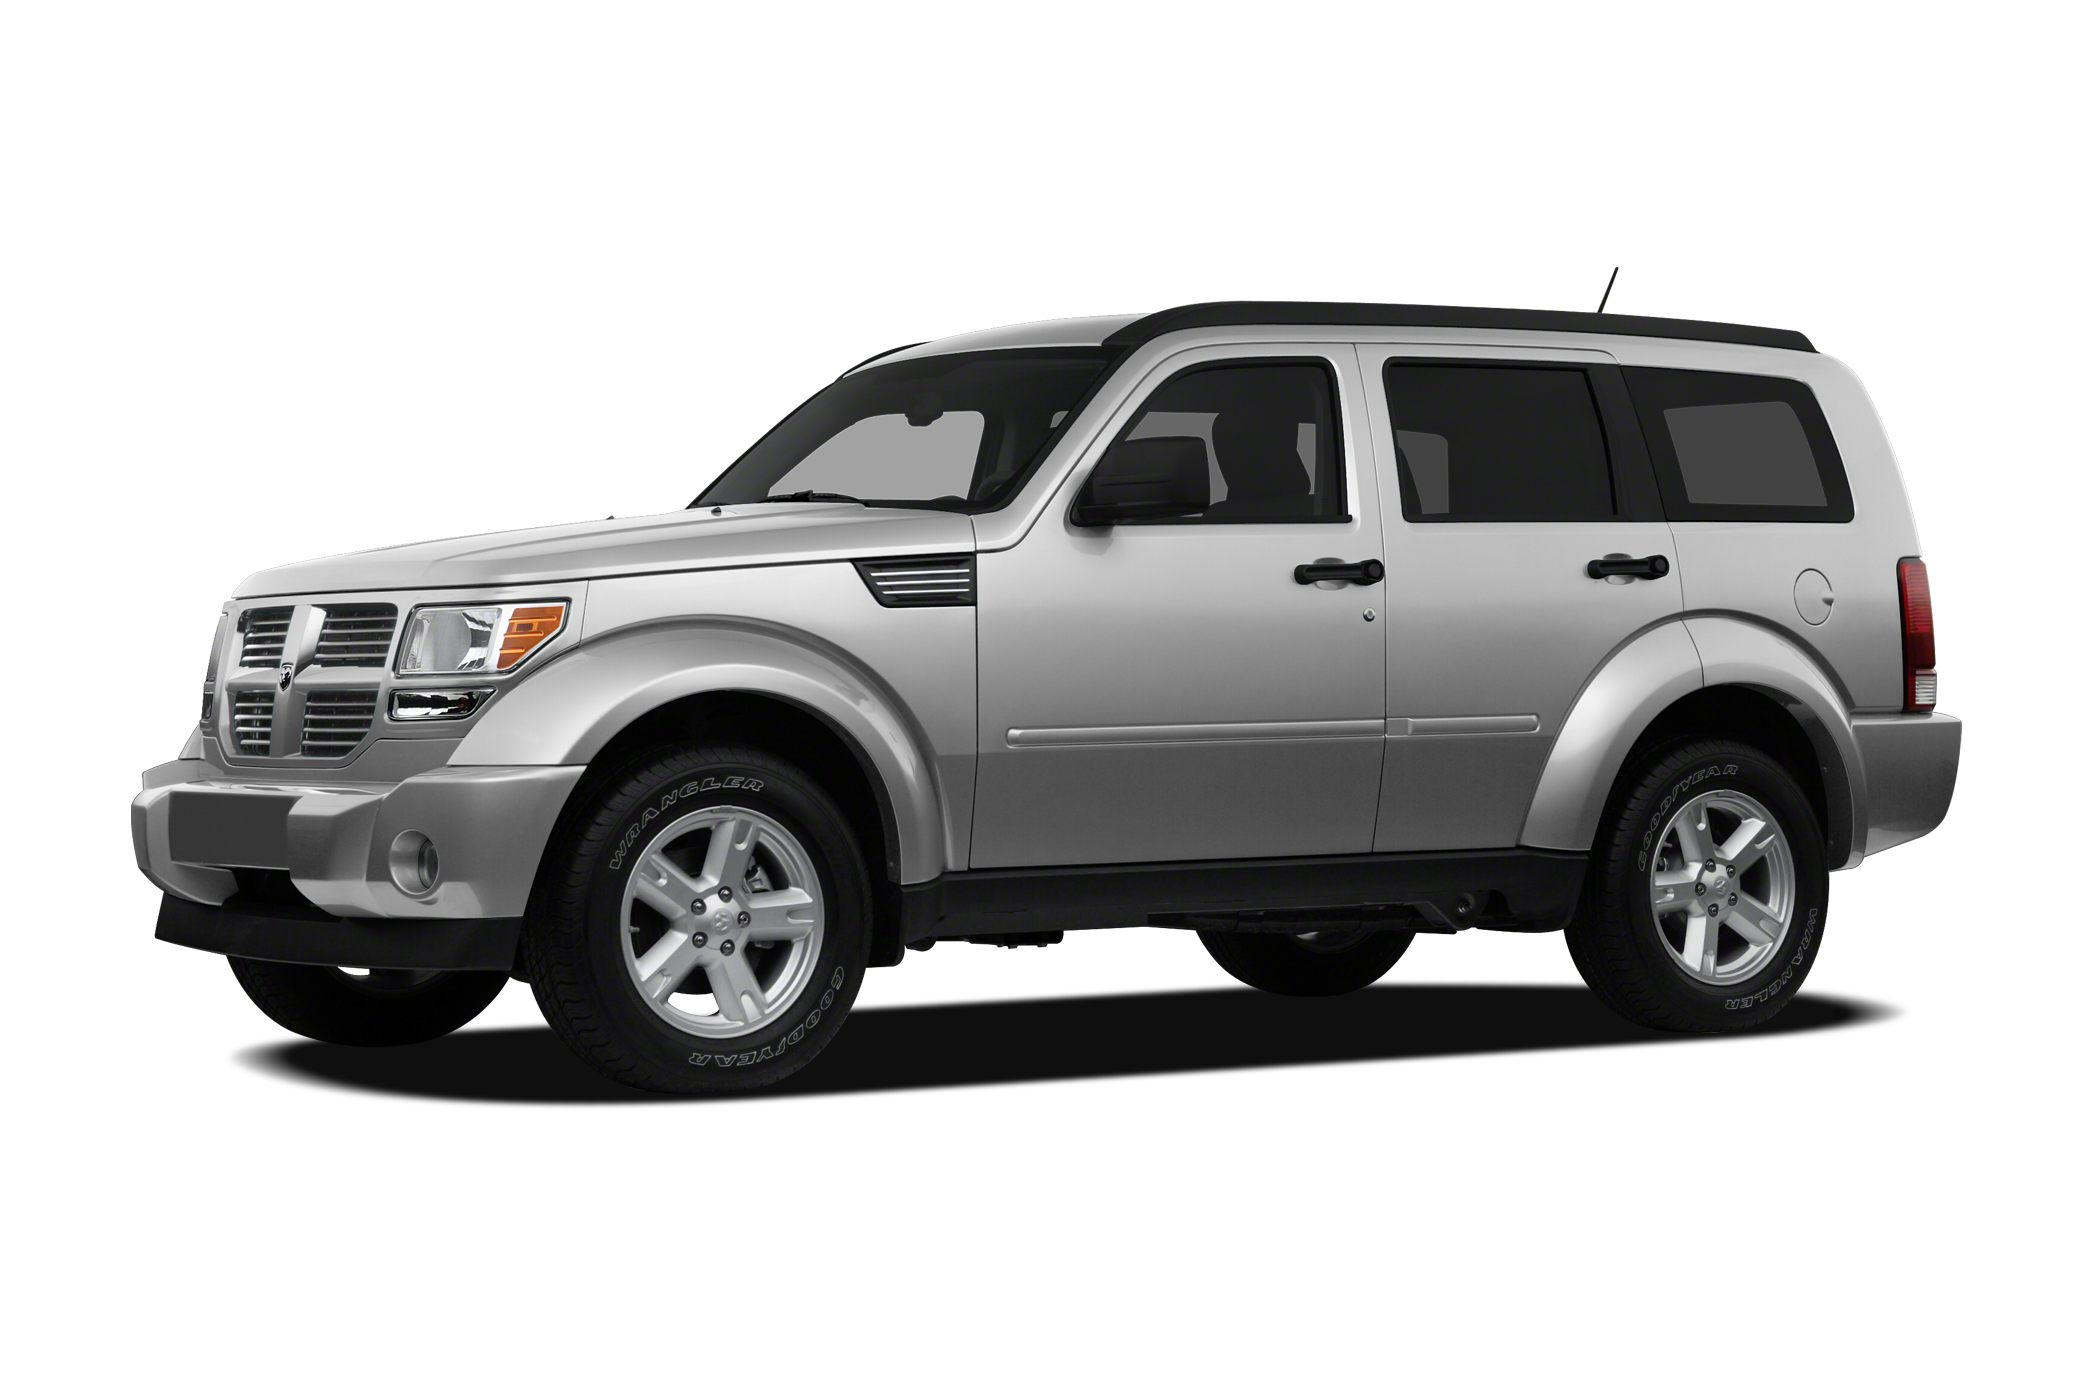 2011 Dodge Nitro Heat SUV for sale in Lancaster for $19,999 with 51,146 miles